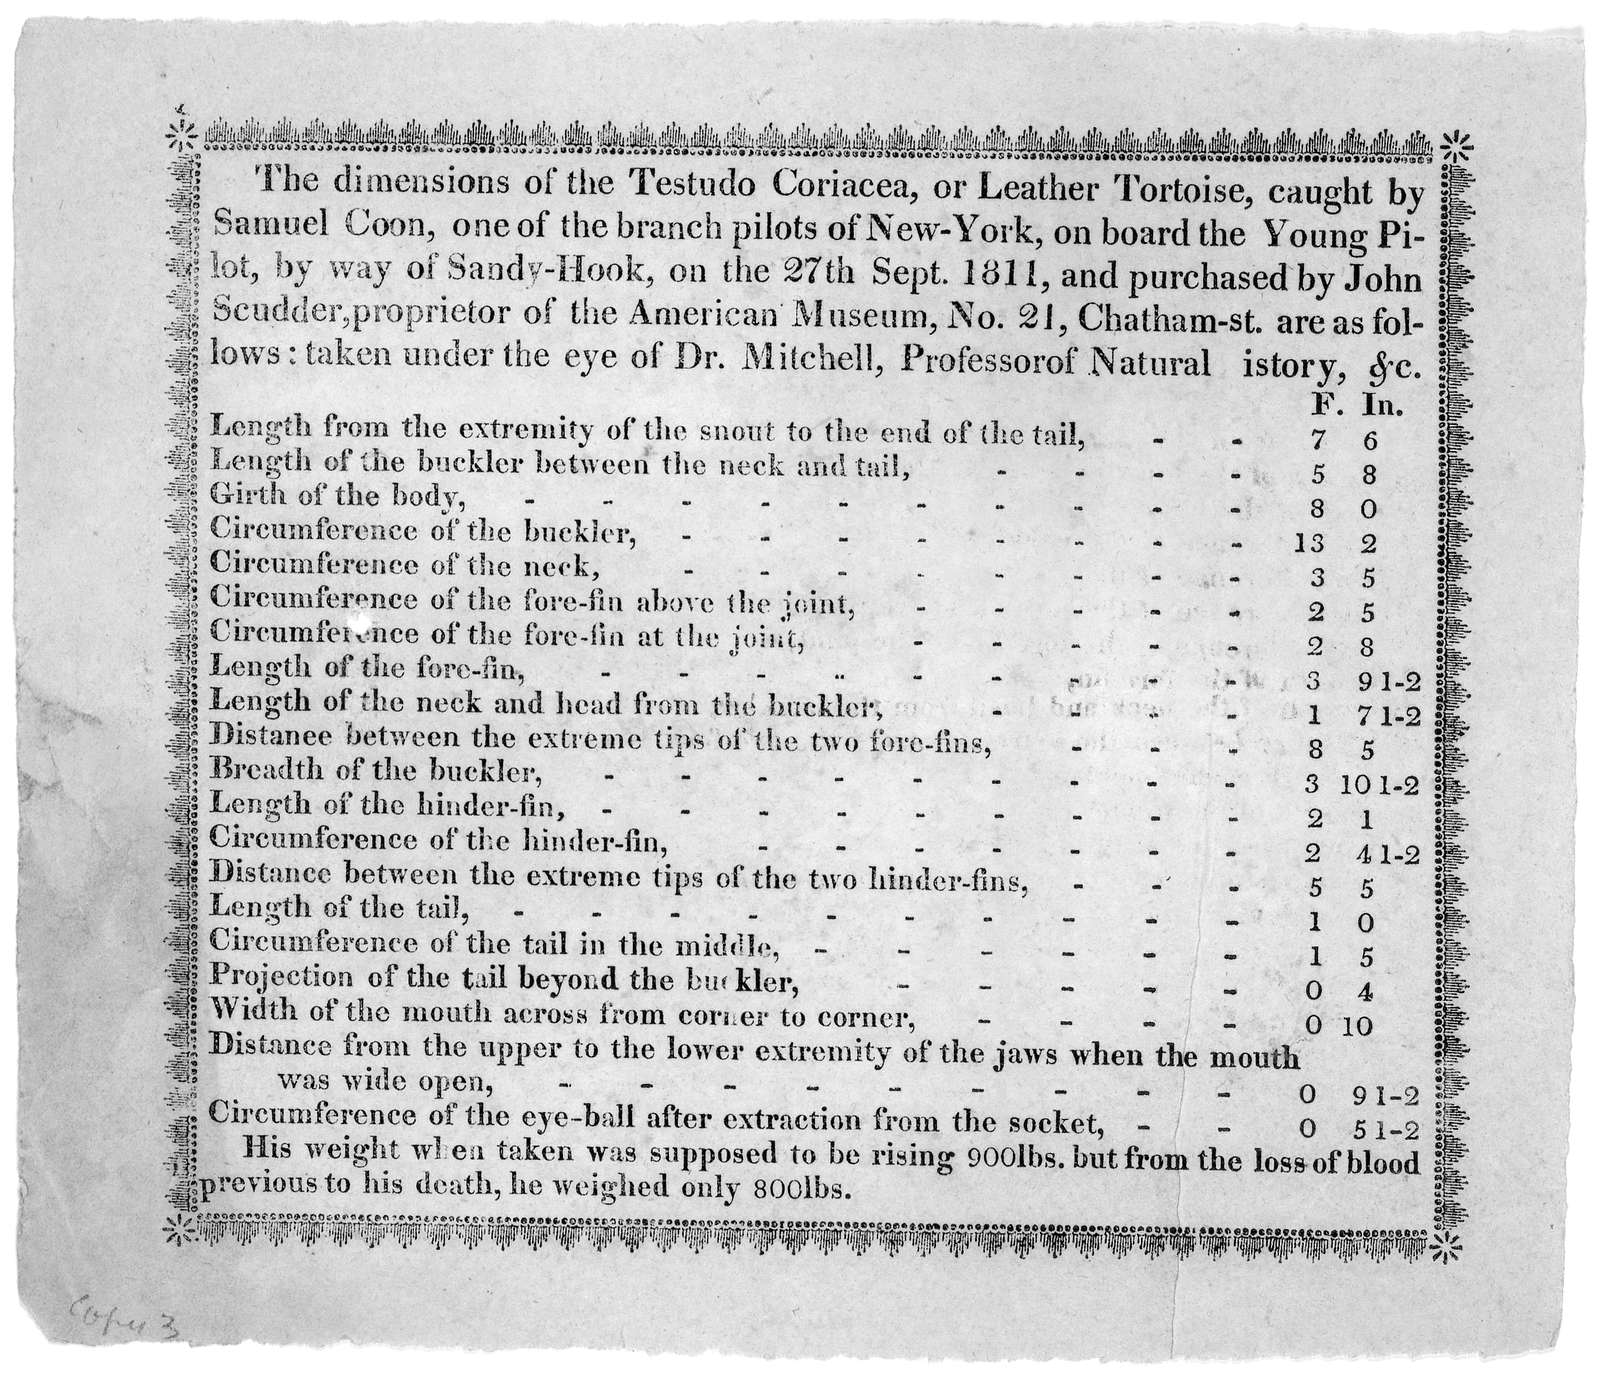 The dimensions of the Testudo Coriacea, or Leather Tortoise, caught by Samuel Coon, one of the branch pilots of New-York on board the Young Pilot, by way of Sandy-Hook, on the 27th Sept. 1811, and purchased by John Scudder, proprietor of the Ame